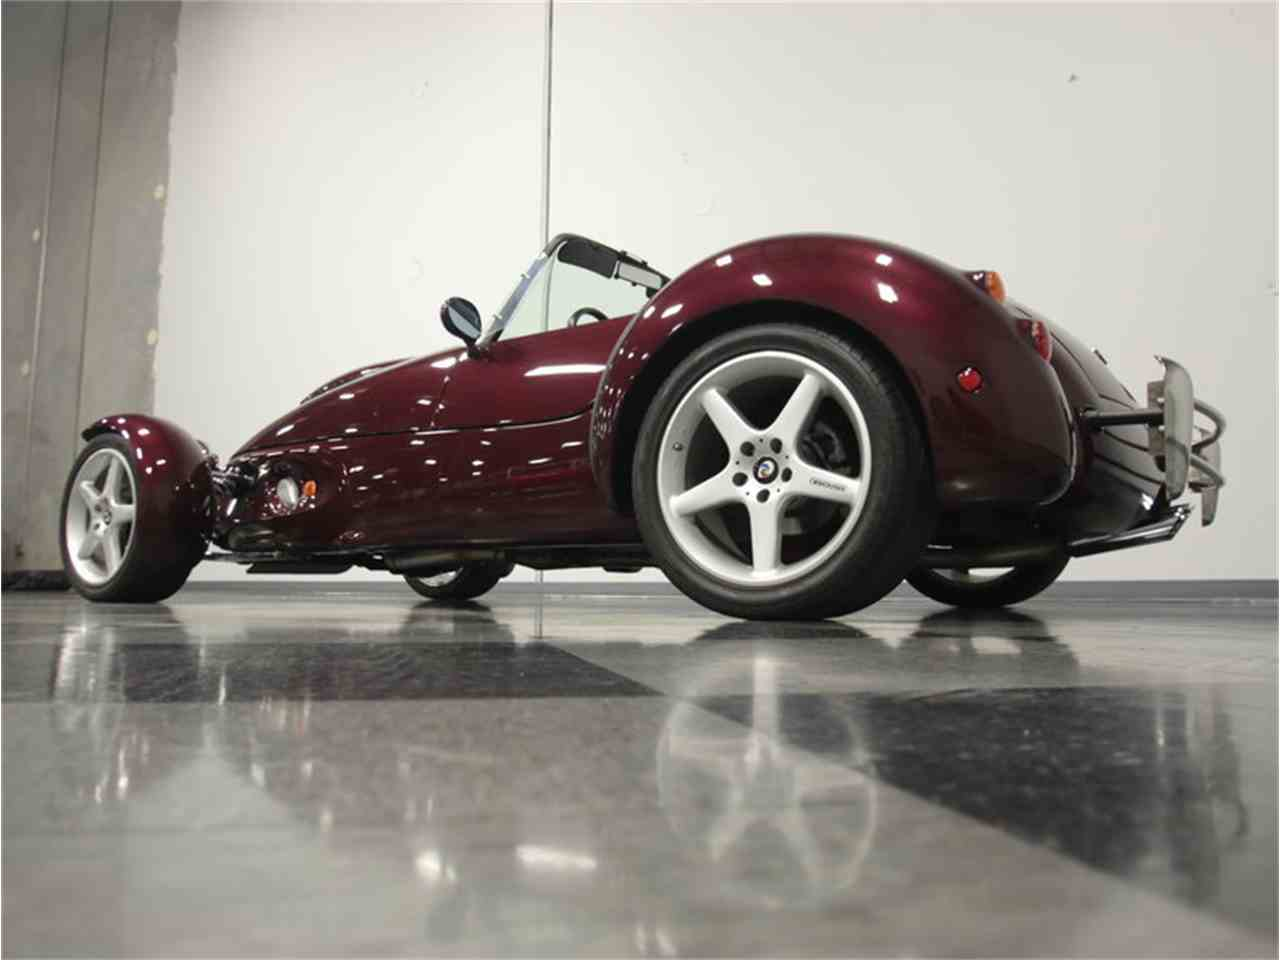 Large Picture of '98 Panoz AIV Roadster Supercharged located in Georgia Offered by Streetside Classics - Atlanta - JPDH